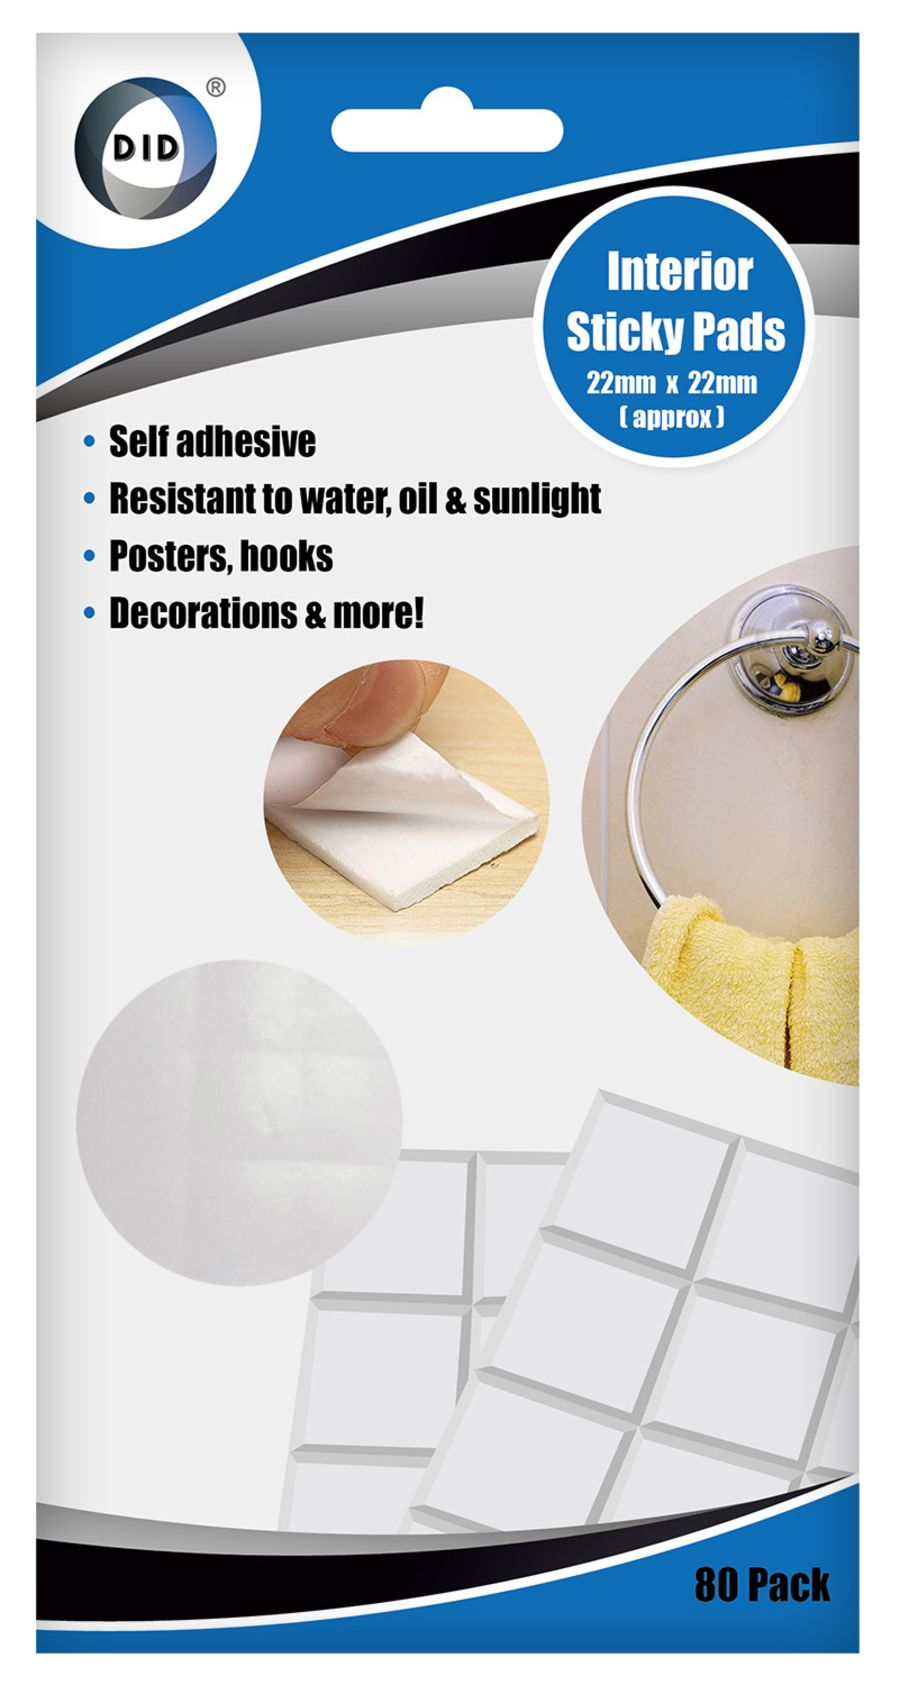 Heavy Duty Double Sided Self Adhesive Interior Sticky Pads